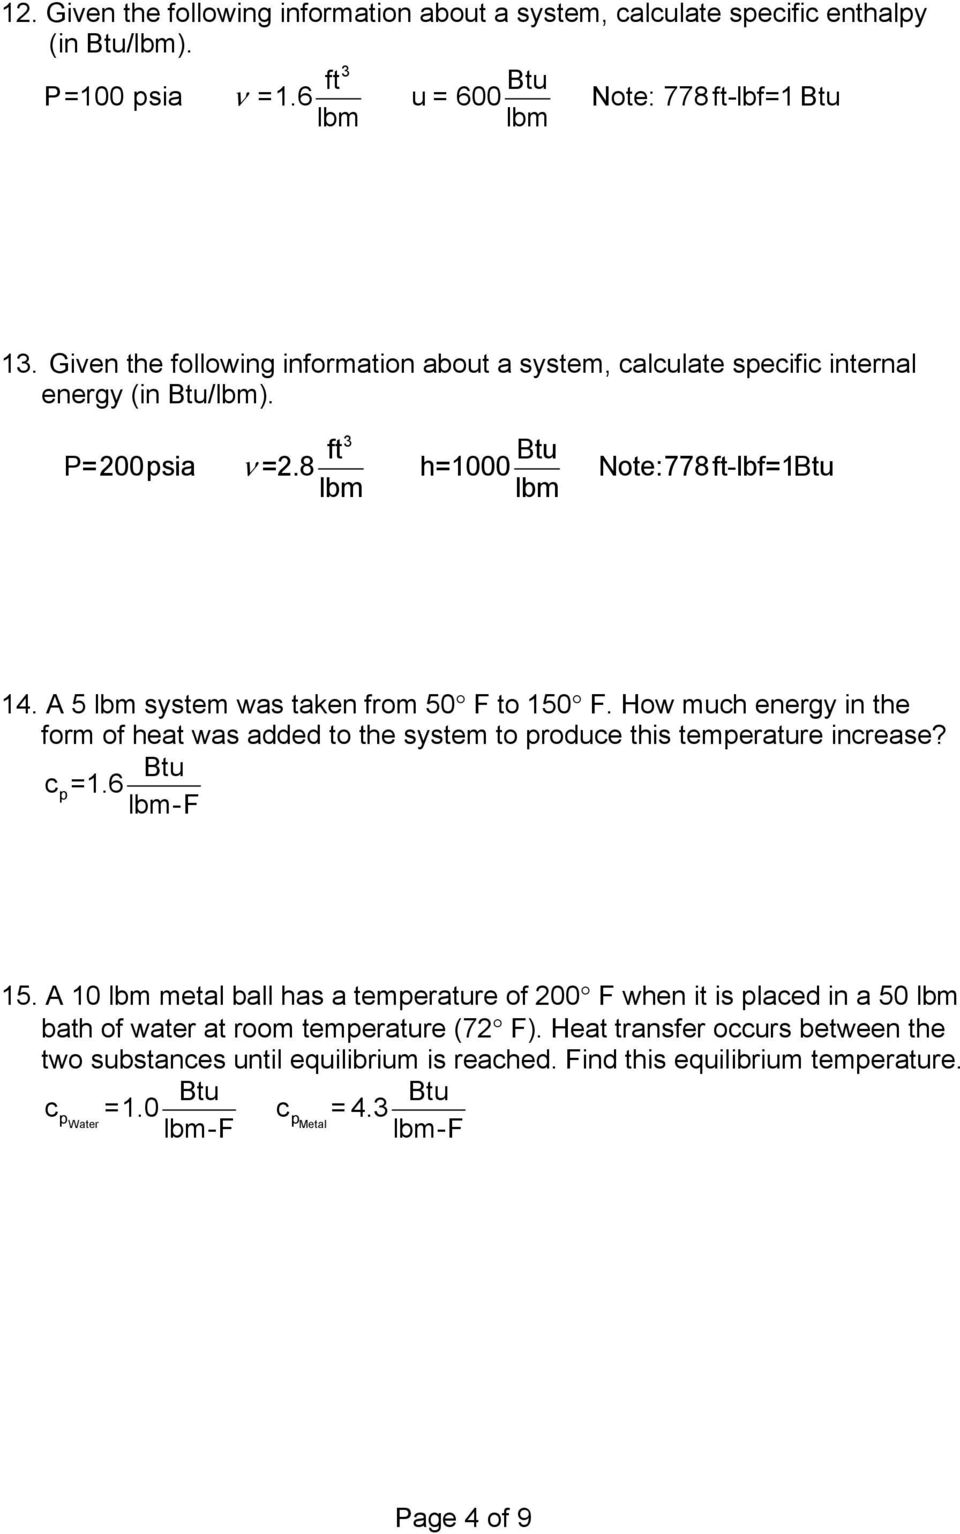 A 5 system was taken from 50 F to 150 F. How much energy in the form of heat was added to the system to produce this temperature increase? c=1.6 p -F 15.